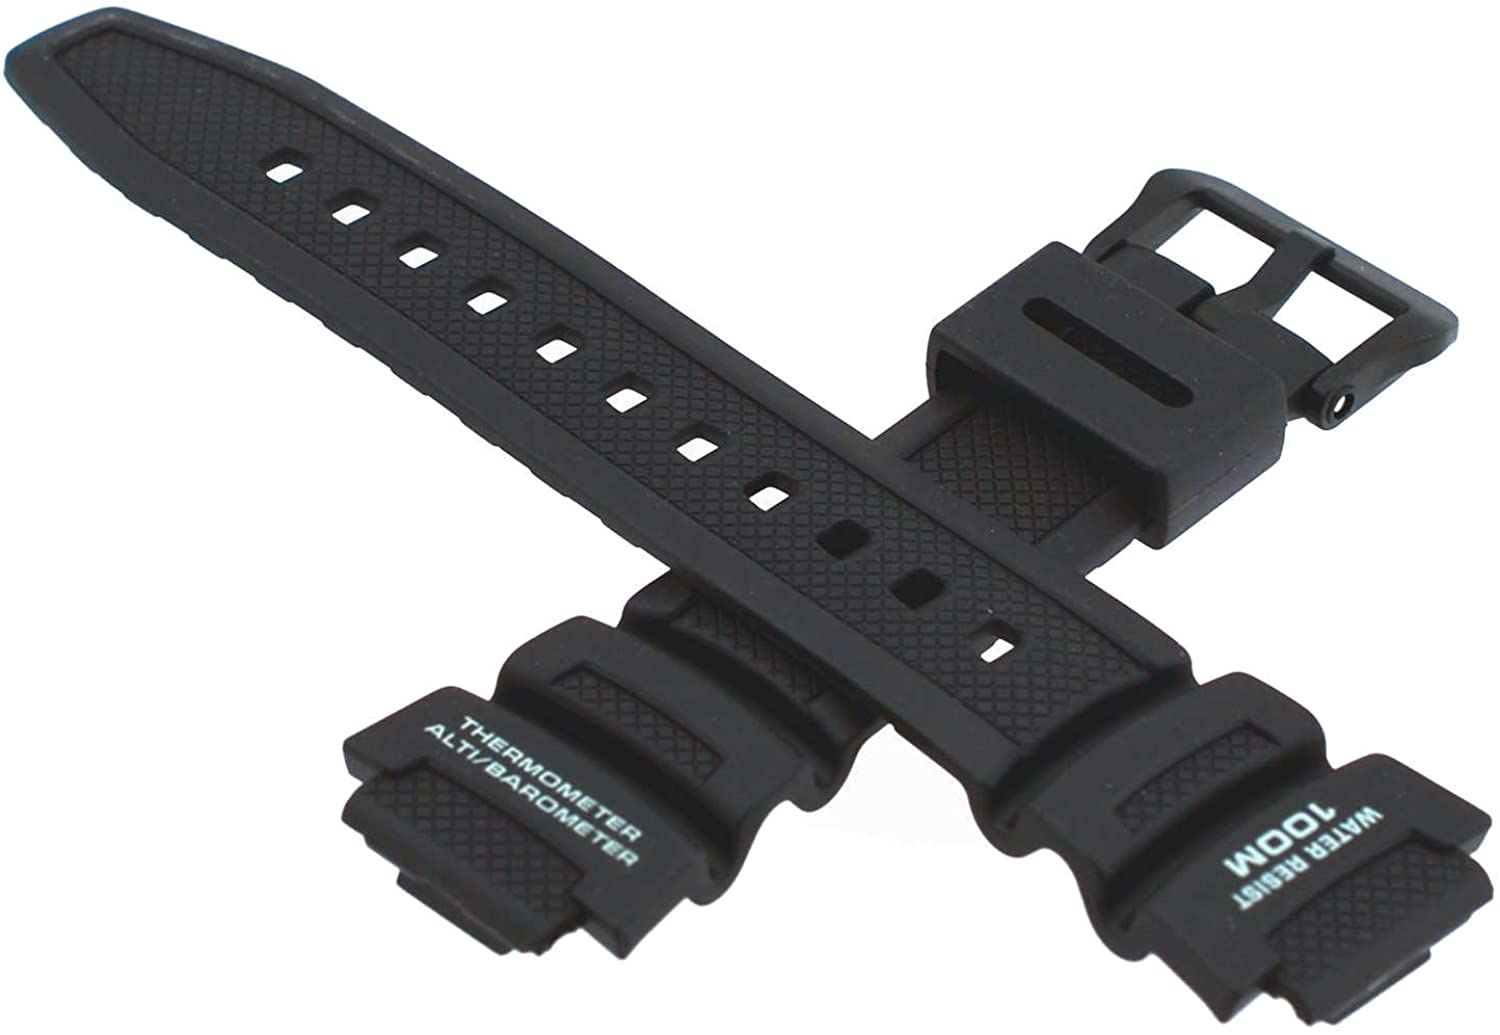 Casio #10360816 Genuine Factory Replacement Band - SGW400H-1BV, SGW300H-1AV